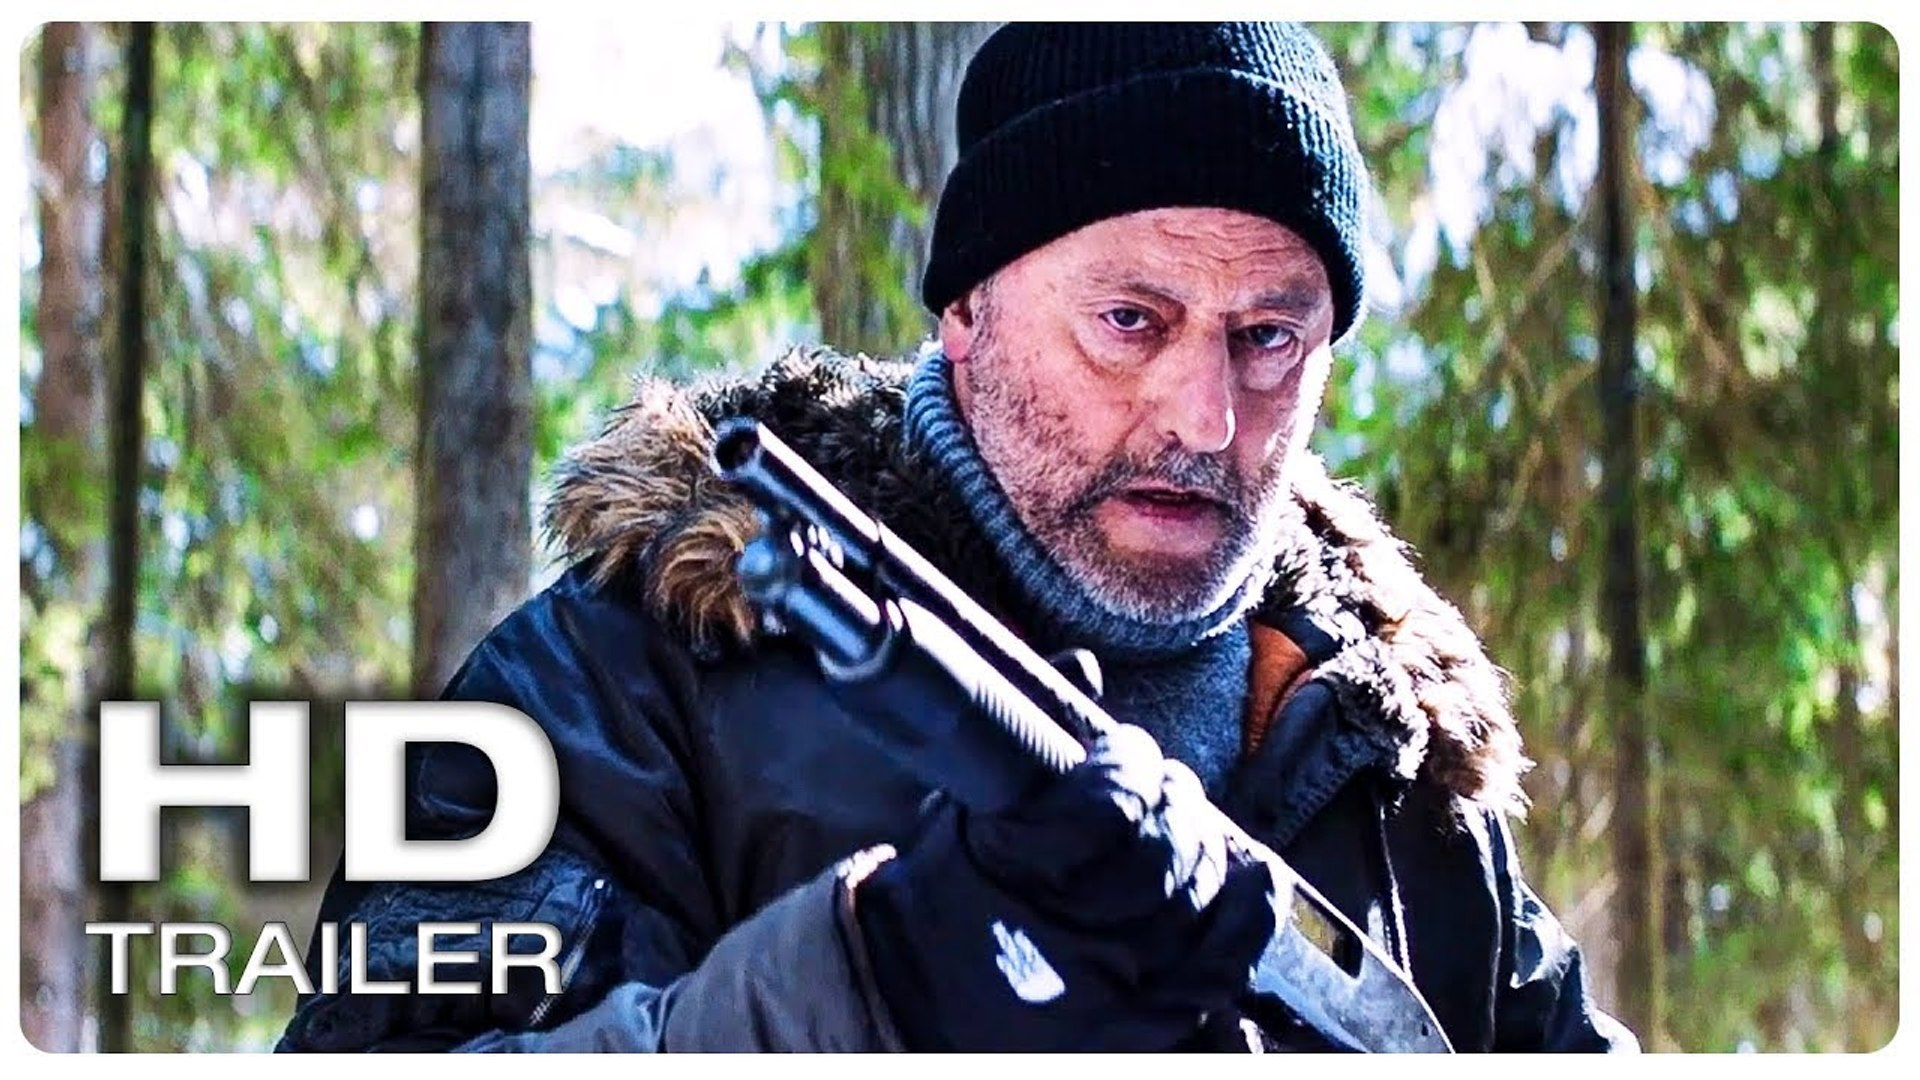 COLD BLOOD Trailer #1 Official (NEW 2019) Jean Reno Thriller Movie HD